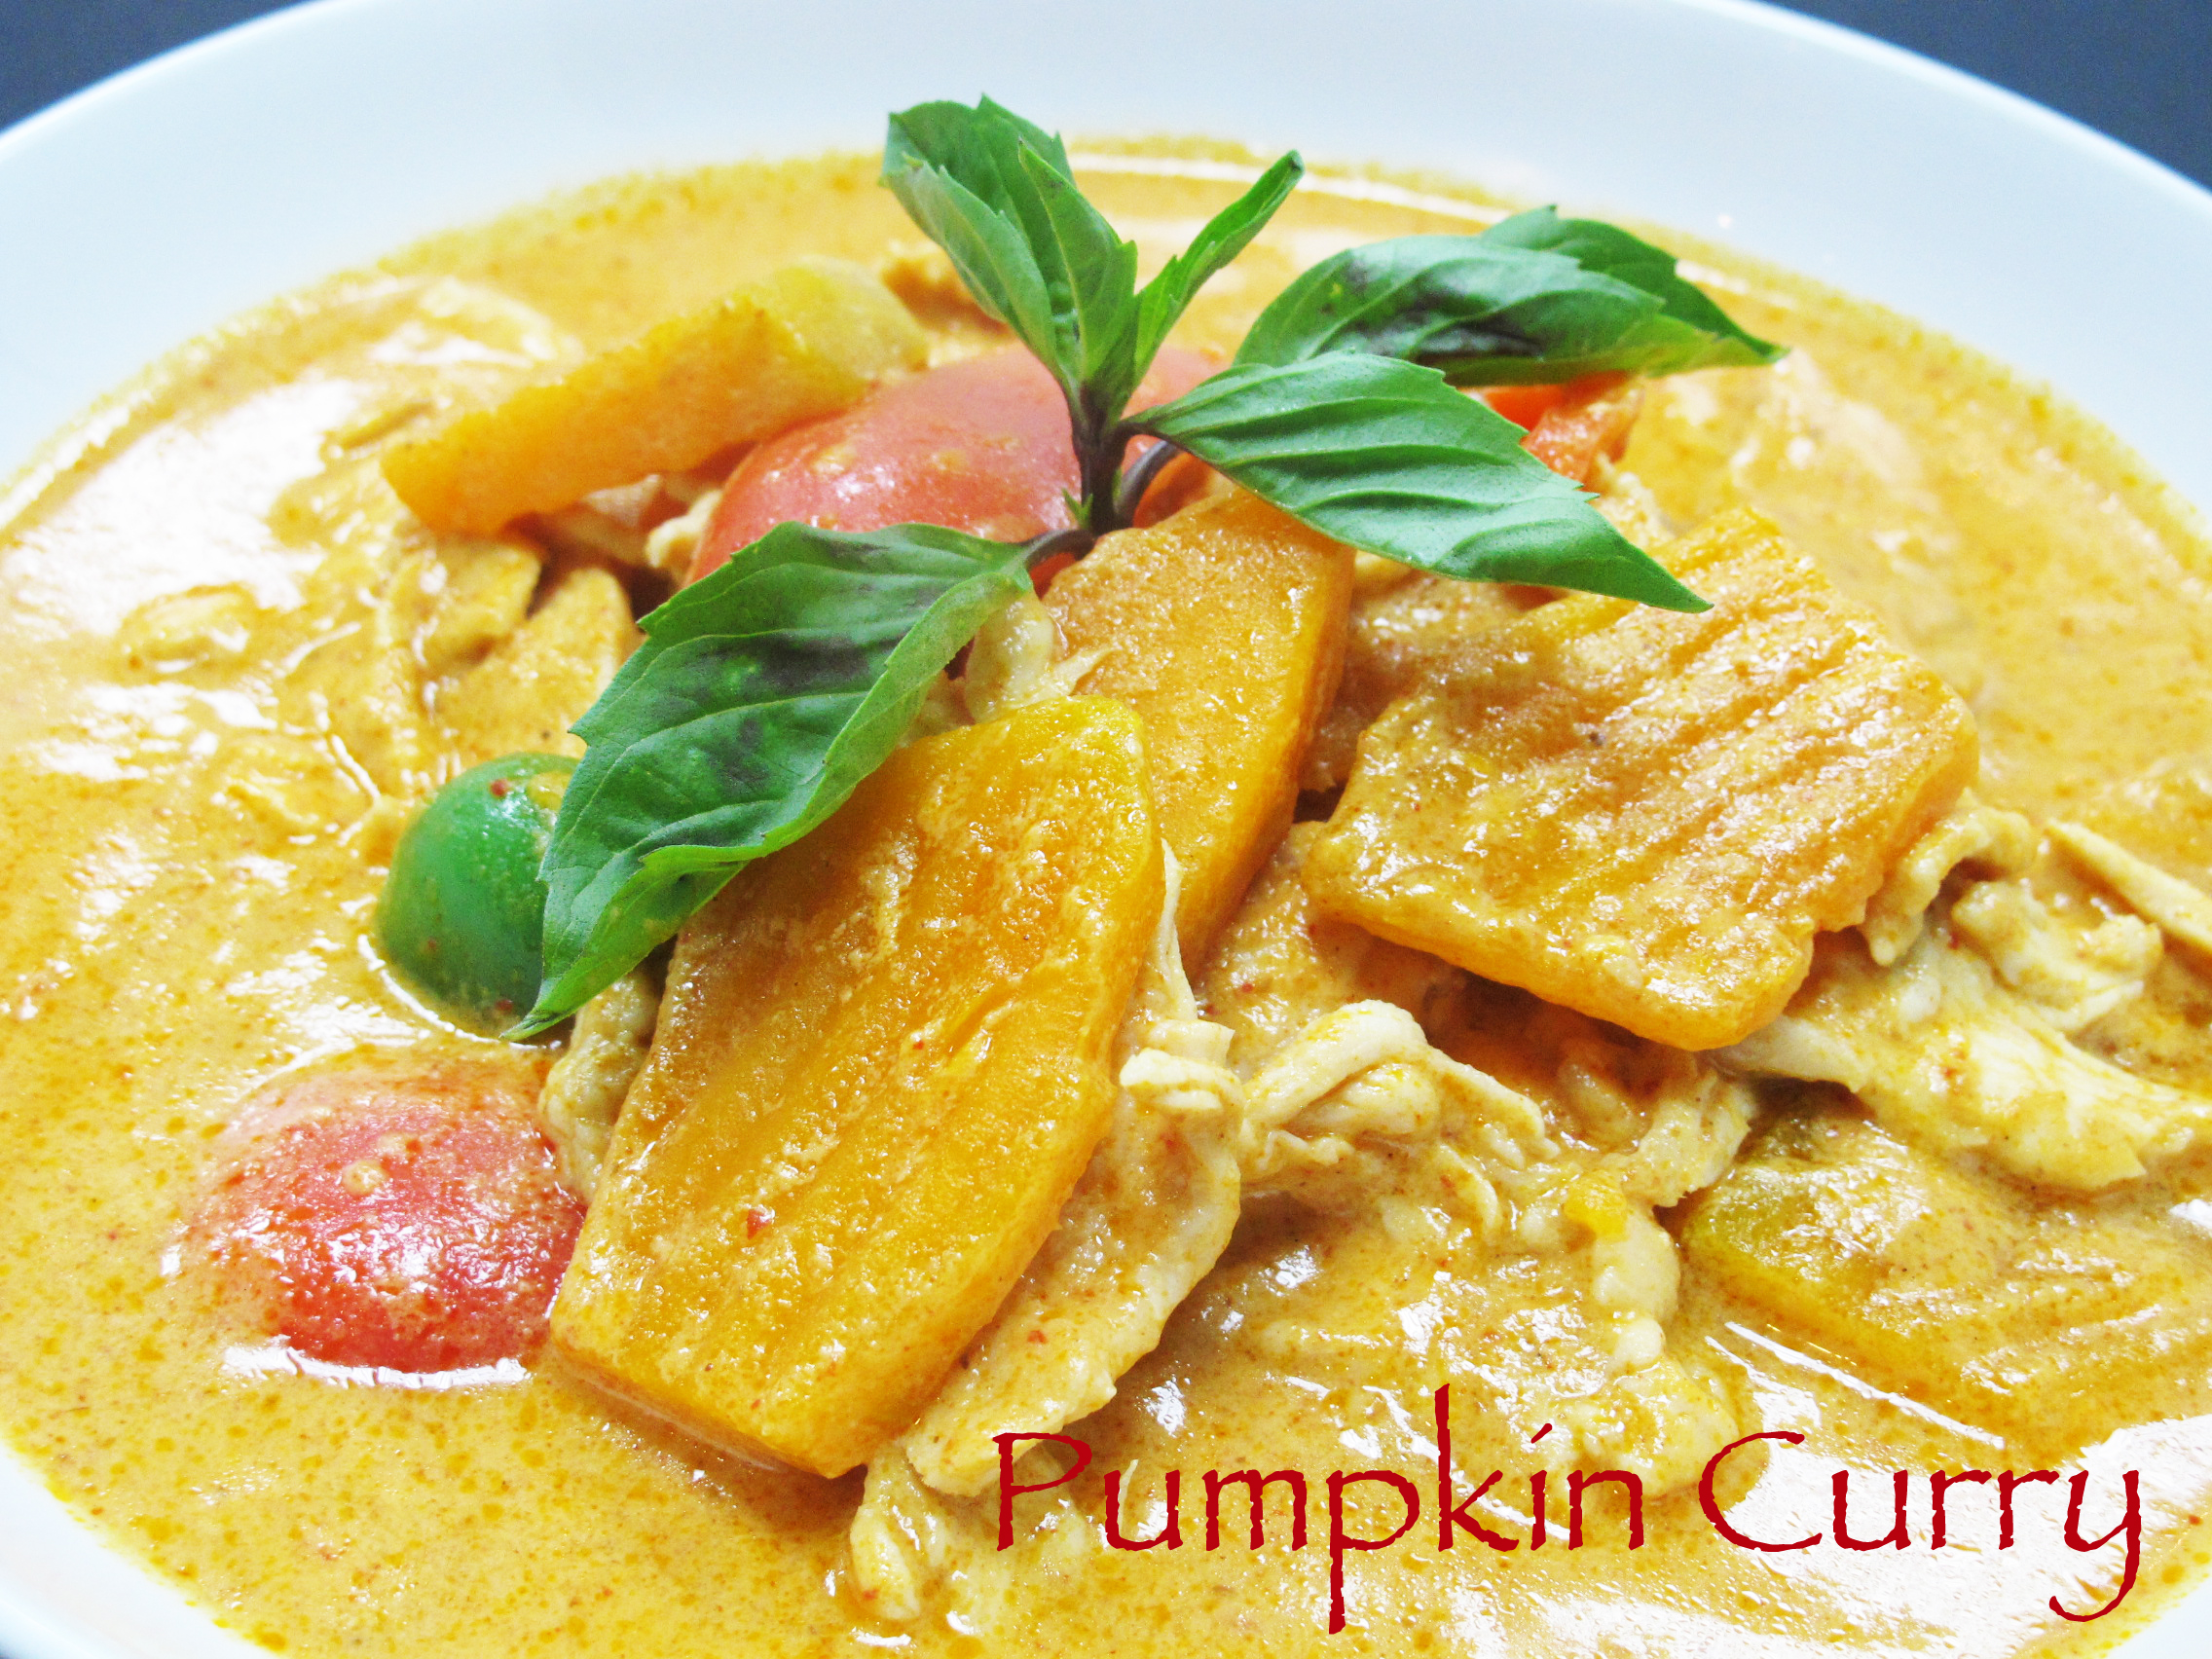 Pumpkin Curry 1.jpg